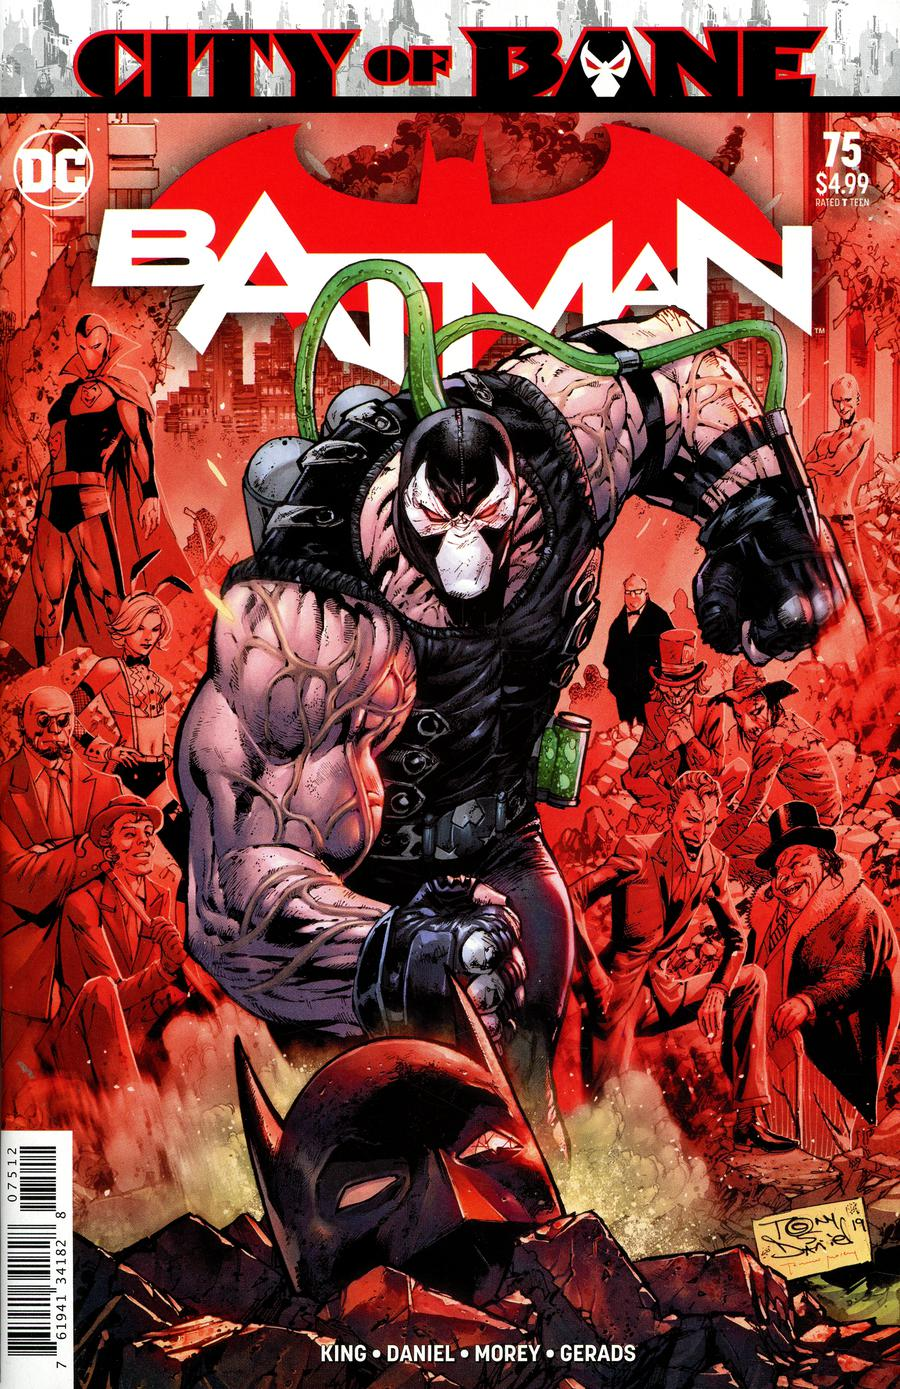 Batman Vol 3 #75 Cover G 2nd Ptg Variant Tony S Daniel Cover (Year Of The Villain The Offer Tie-In)